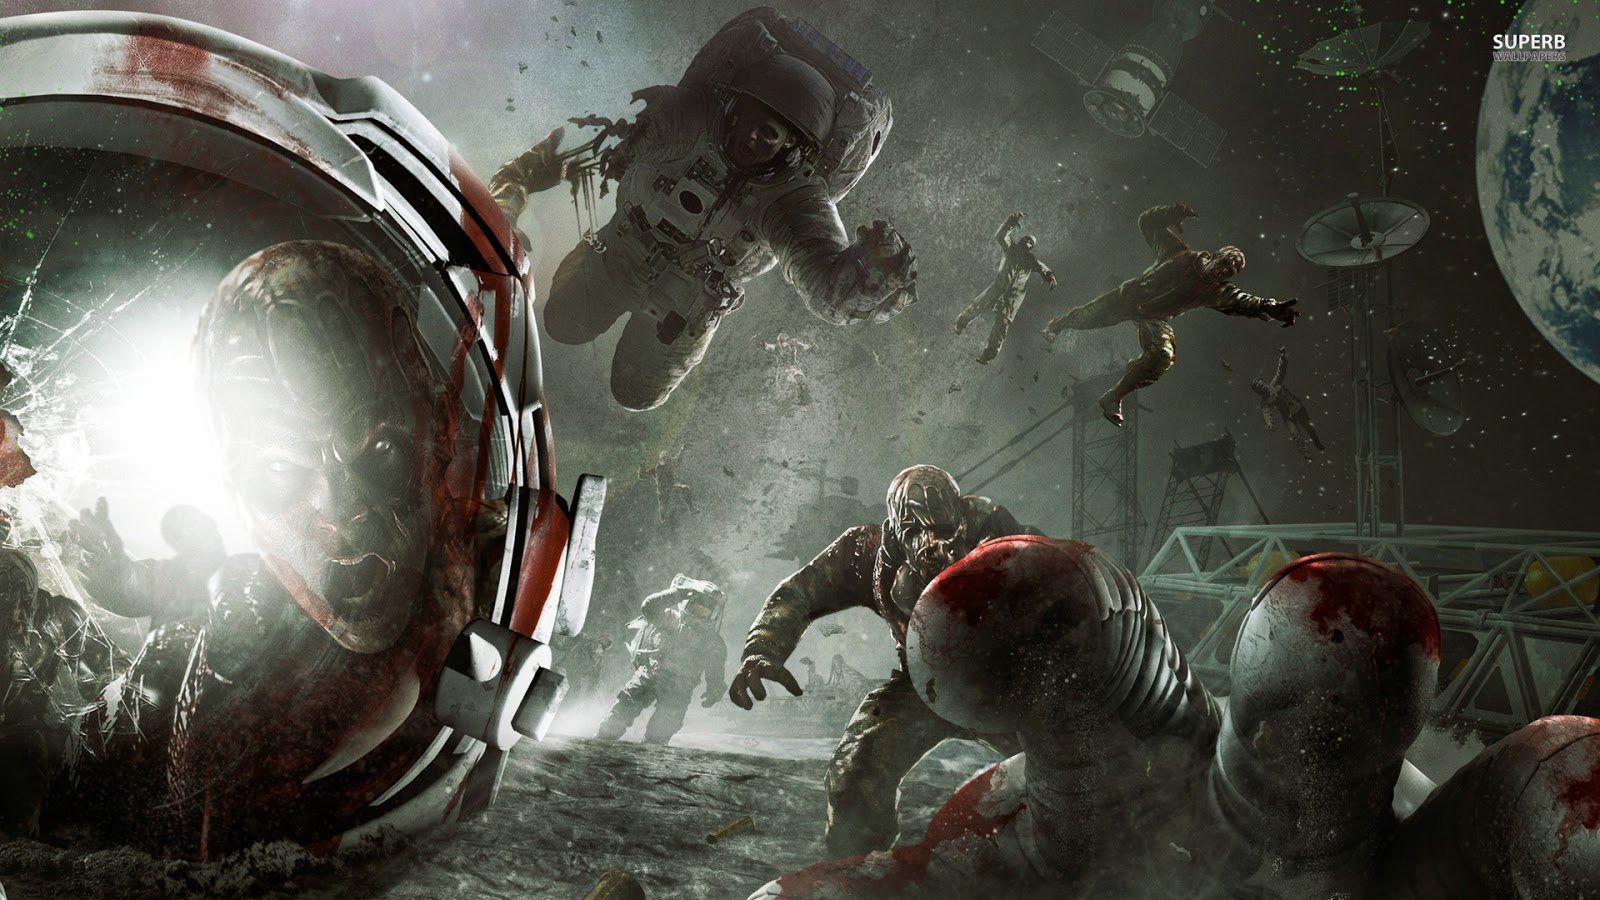 Free Download Wallpapers Call Of Duty Black Ops 2 Zombie Full Hd